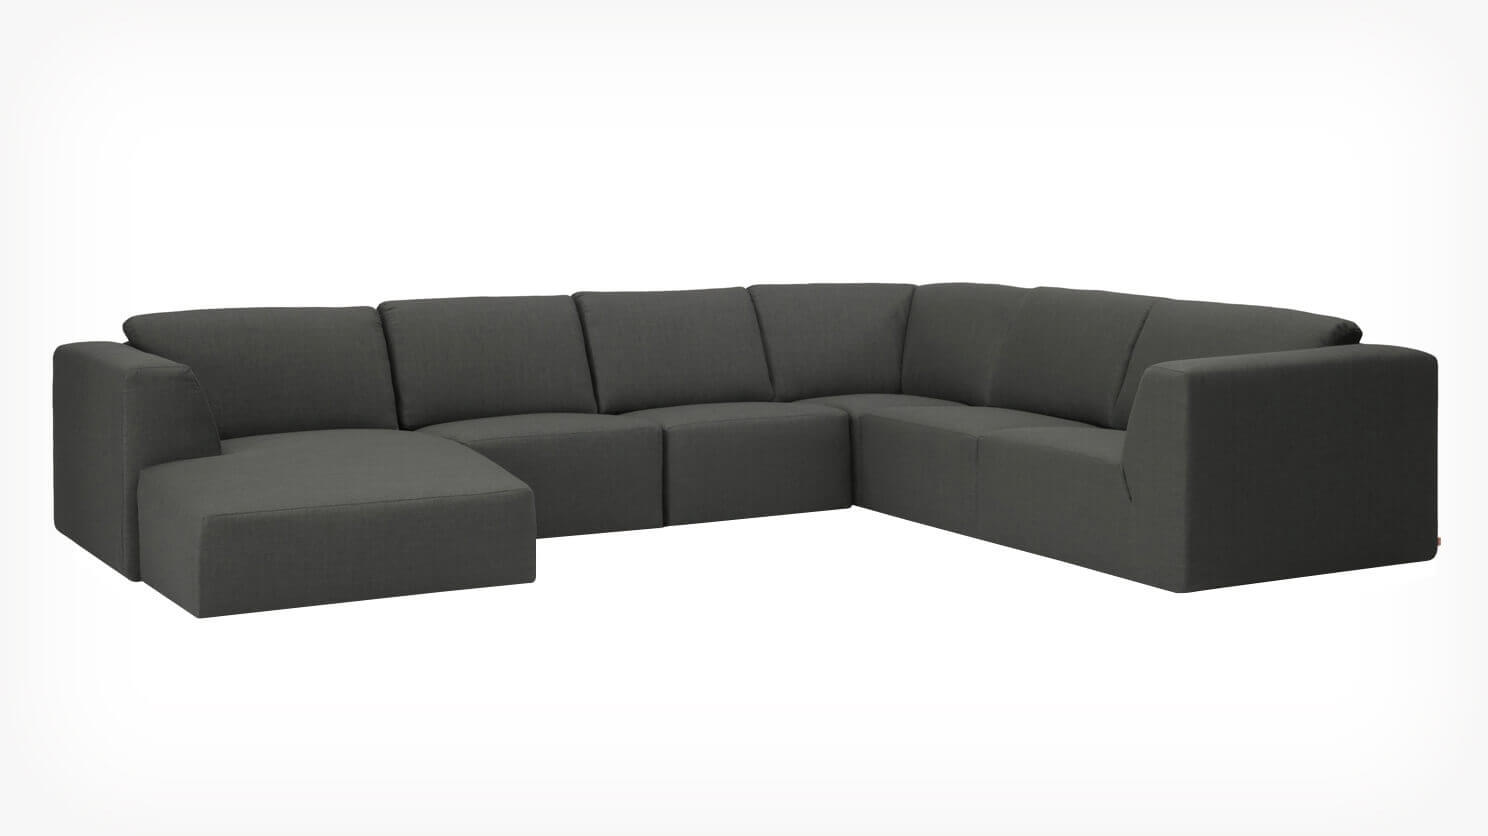 Morten 6-Piece Sectional Sofa with Chaise - Fabric | EQ3